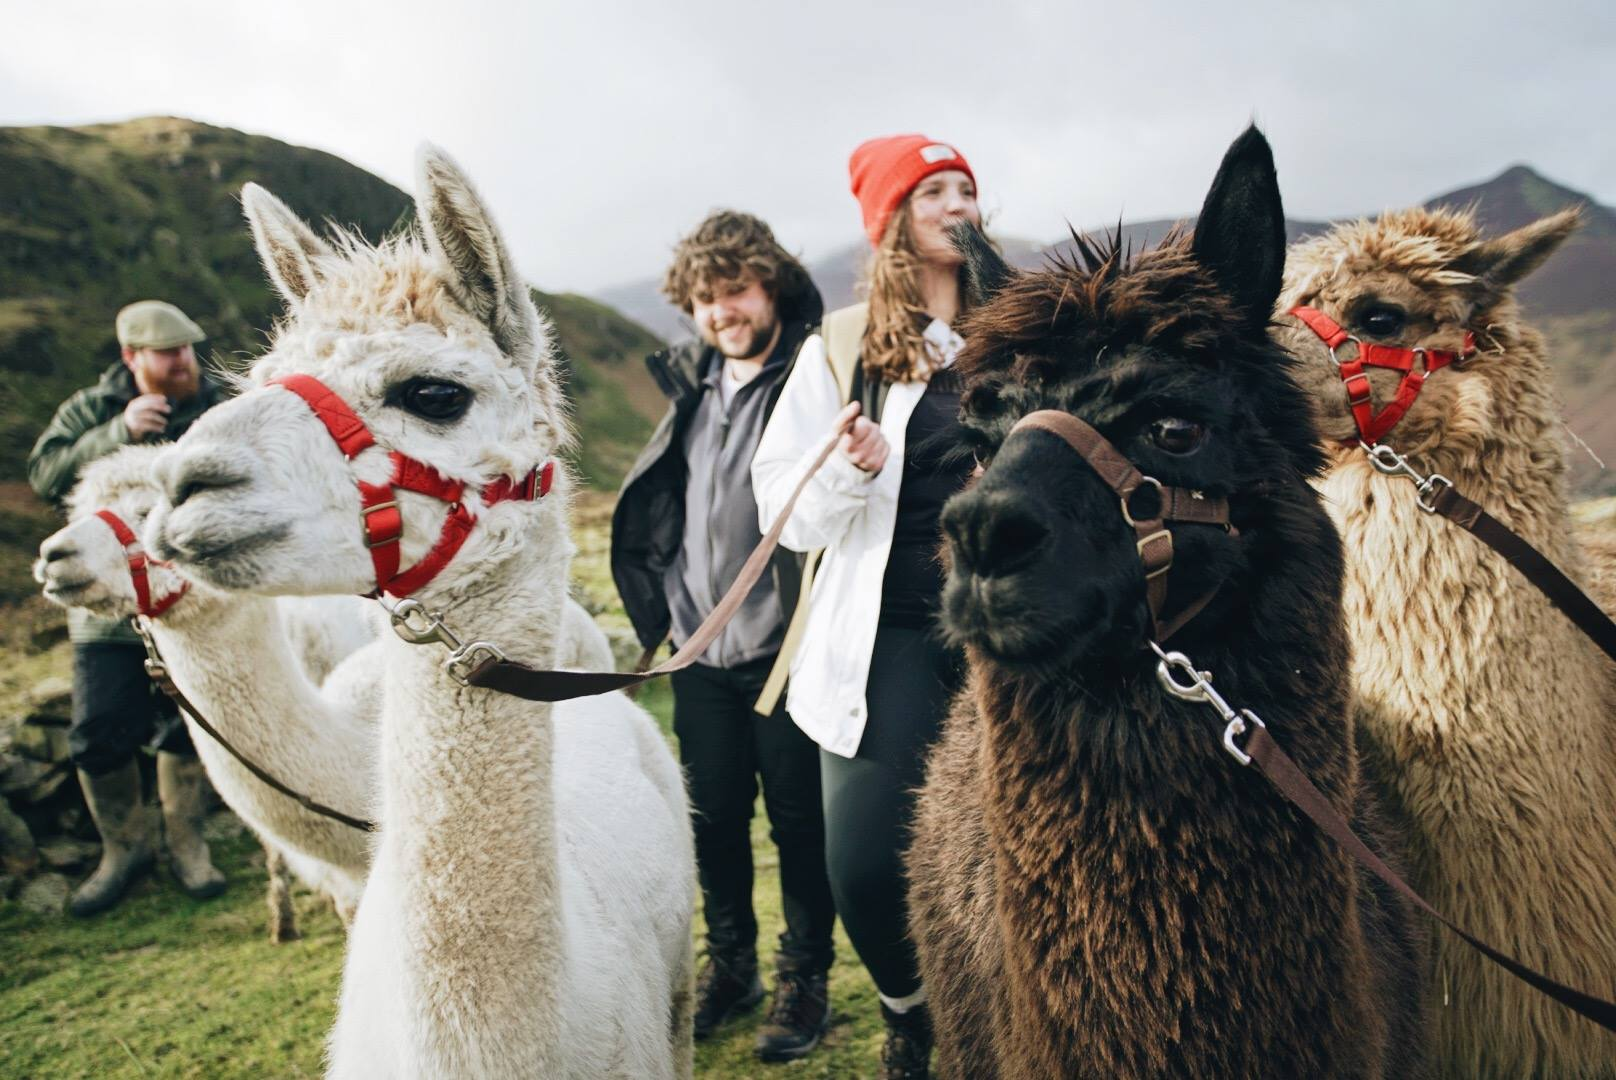 Rescue Alpacas Start Animal Therapy For At Risk Kids 27173106 1130511317052588 1767939530154470333 o 1